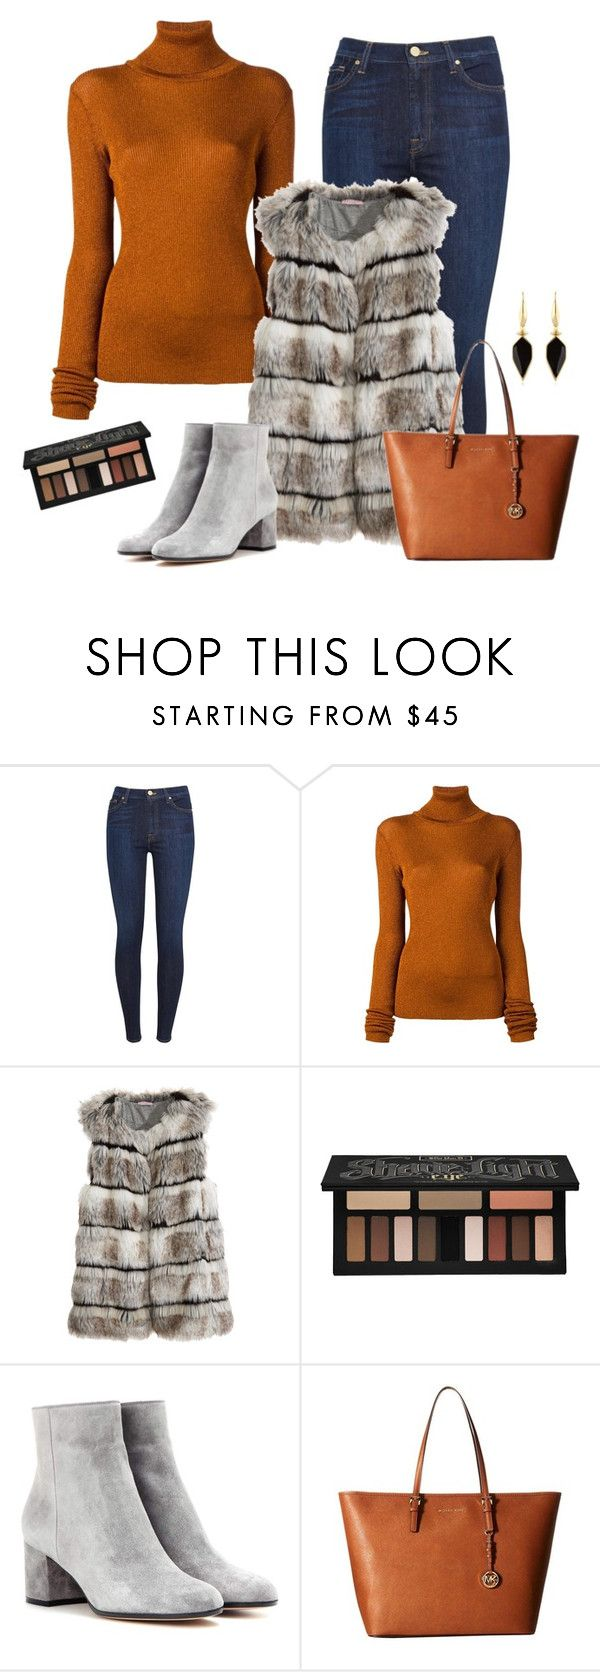 """Untitled #807"" by heyjerseygirl ❤ liked on Polyvore featuring 7 For All Mankind, MARIOS, Calypso St. Barth, Kat Von D, Gianvito Rossi, MICHAEL Michael Kors and Isabel Marant"